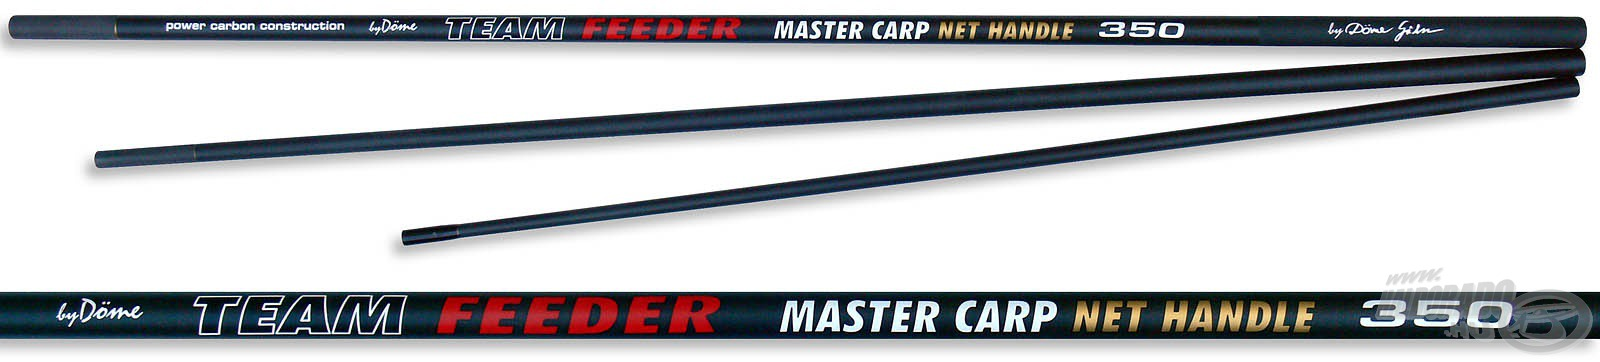 By, D�me, Team, Feeder, Master, Carp, rak�s, mer�t�ny�l, 3,5, m, 11990Ft